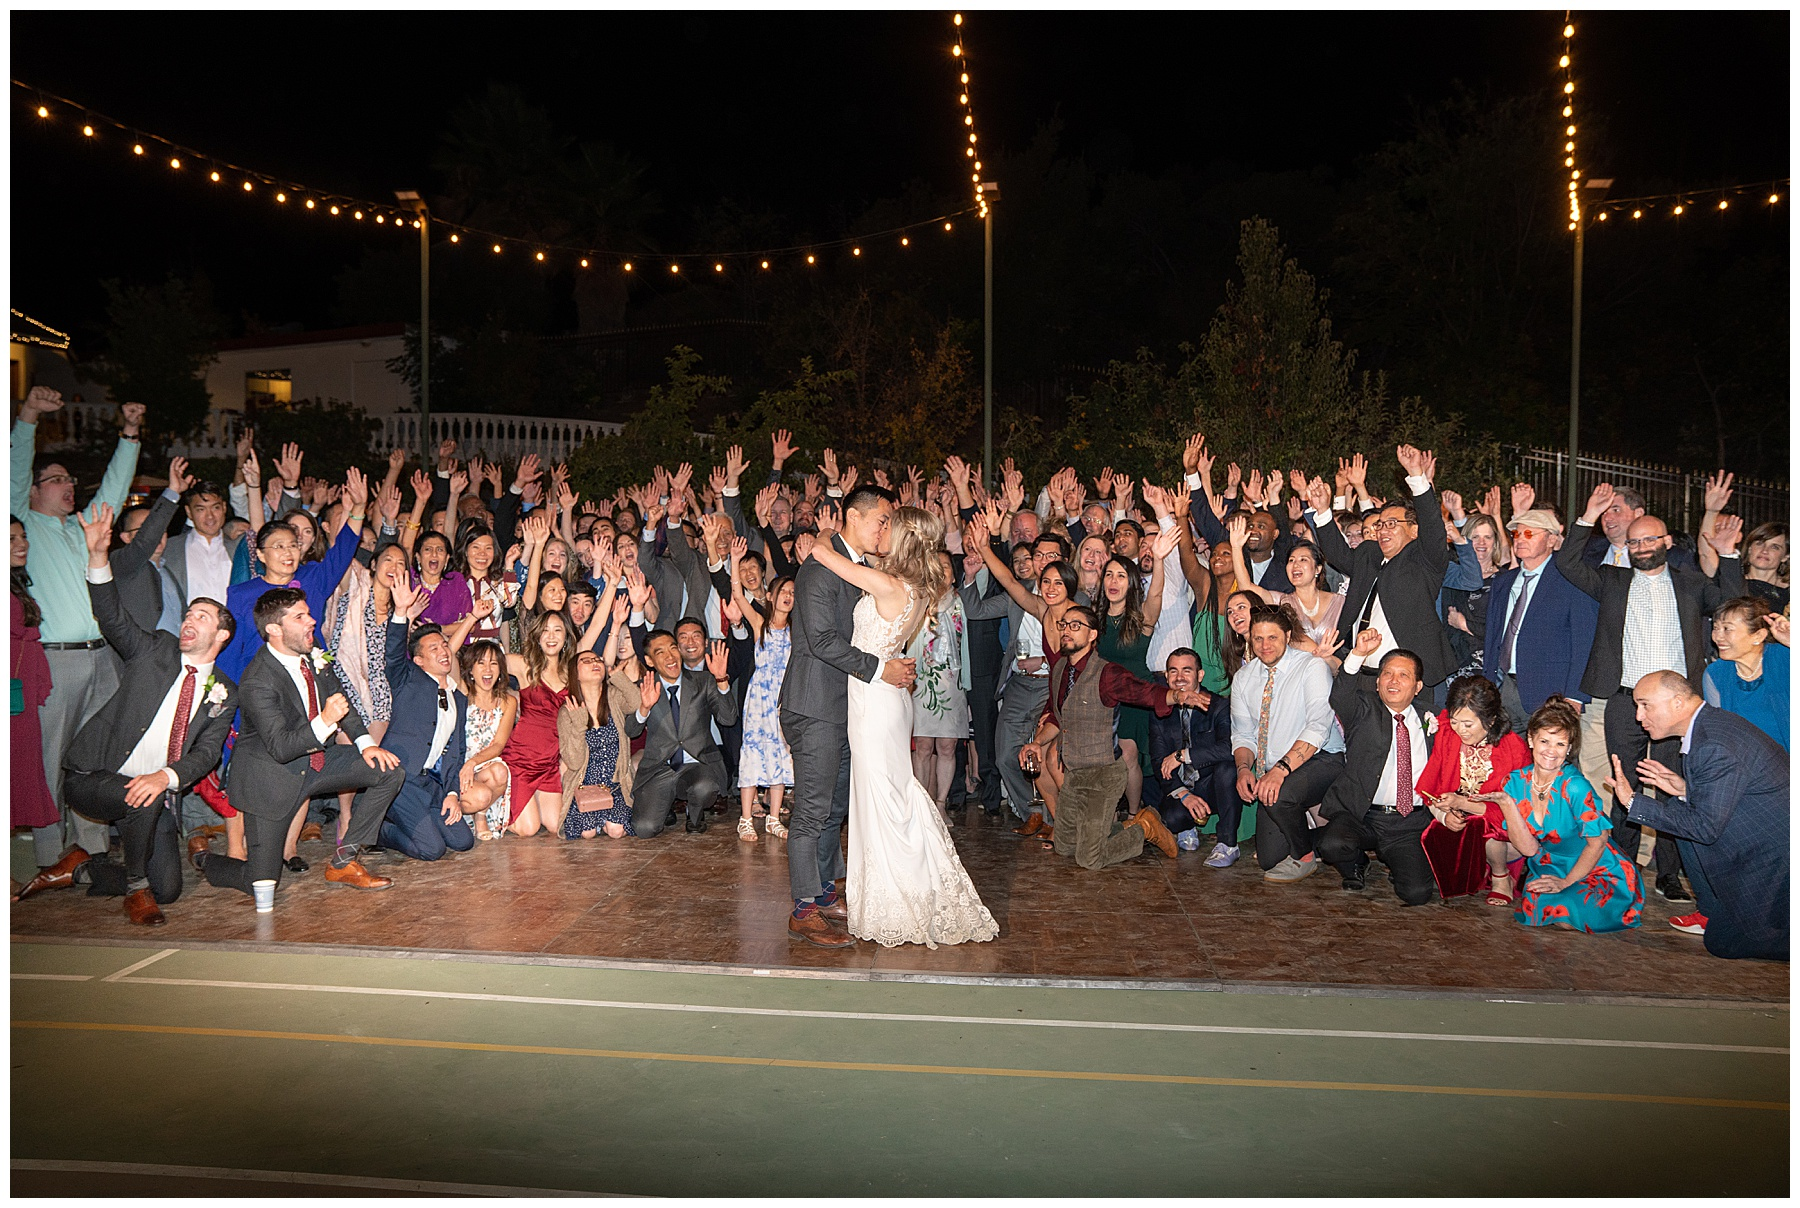 group photo of all wedding guests on dance floor